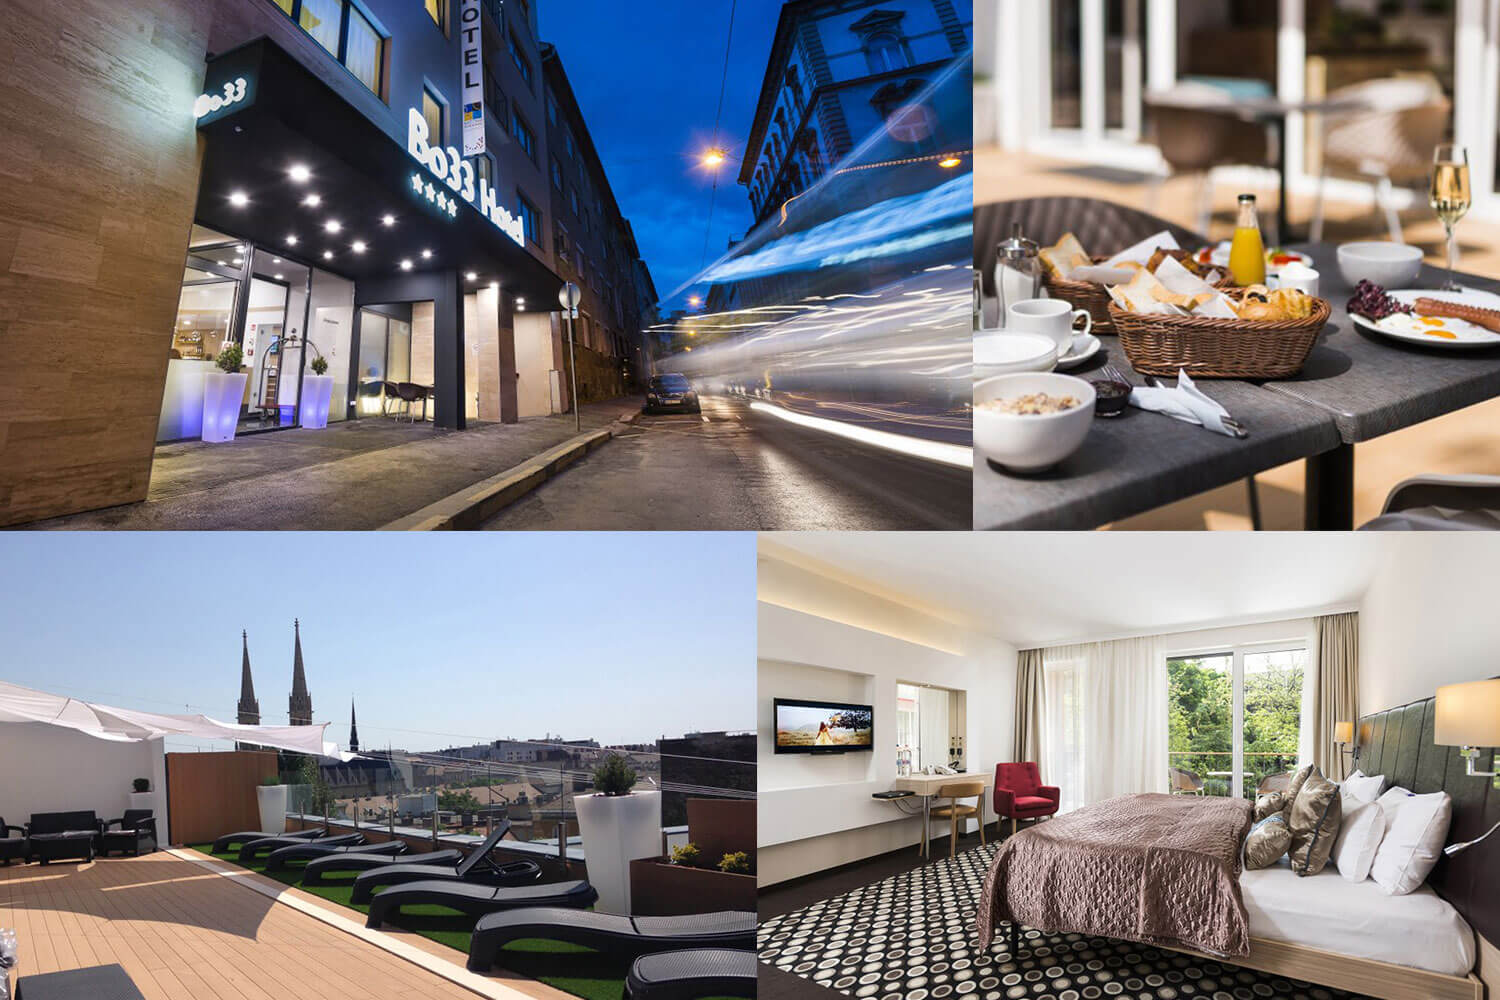 3 Tage im **** Bo33 Hotel Family & Suites in Budapest erleben